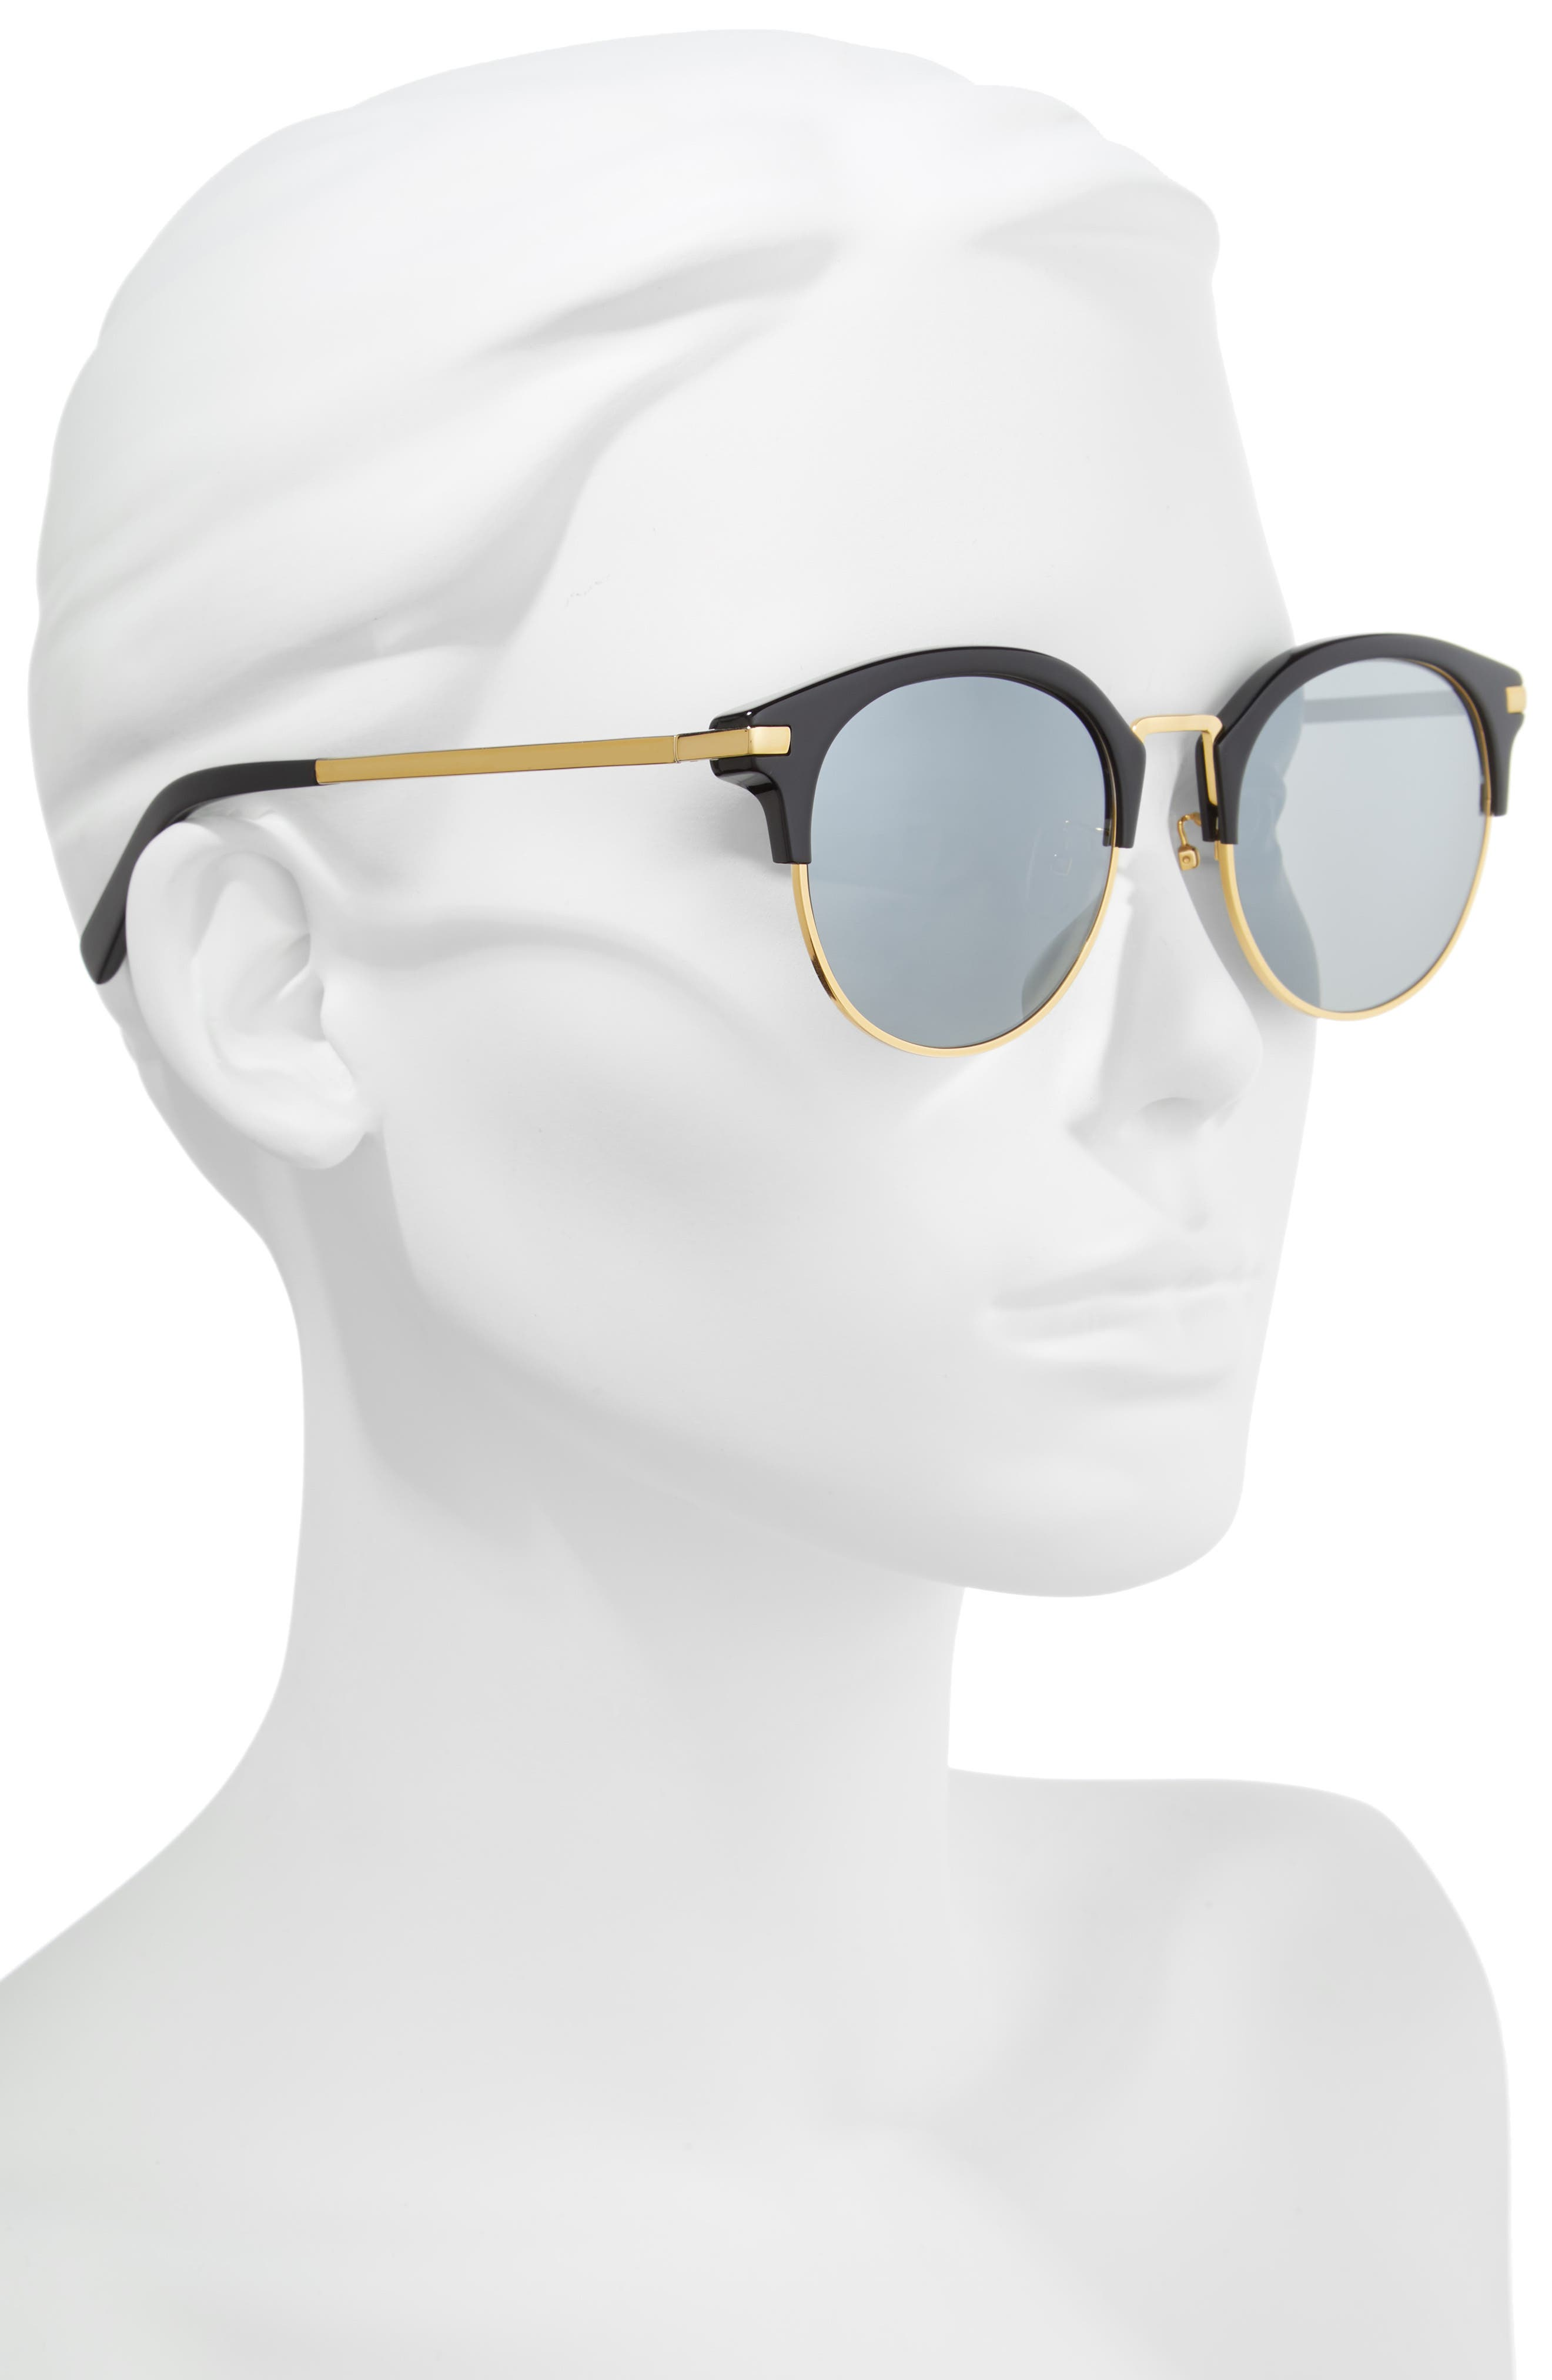 56mm Round Sunglasses,                             Alternate thumbnail 2, color,                             Gold And Black/Blue Mirror